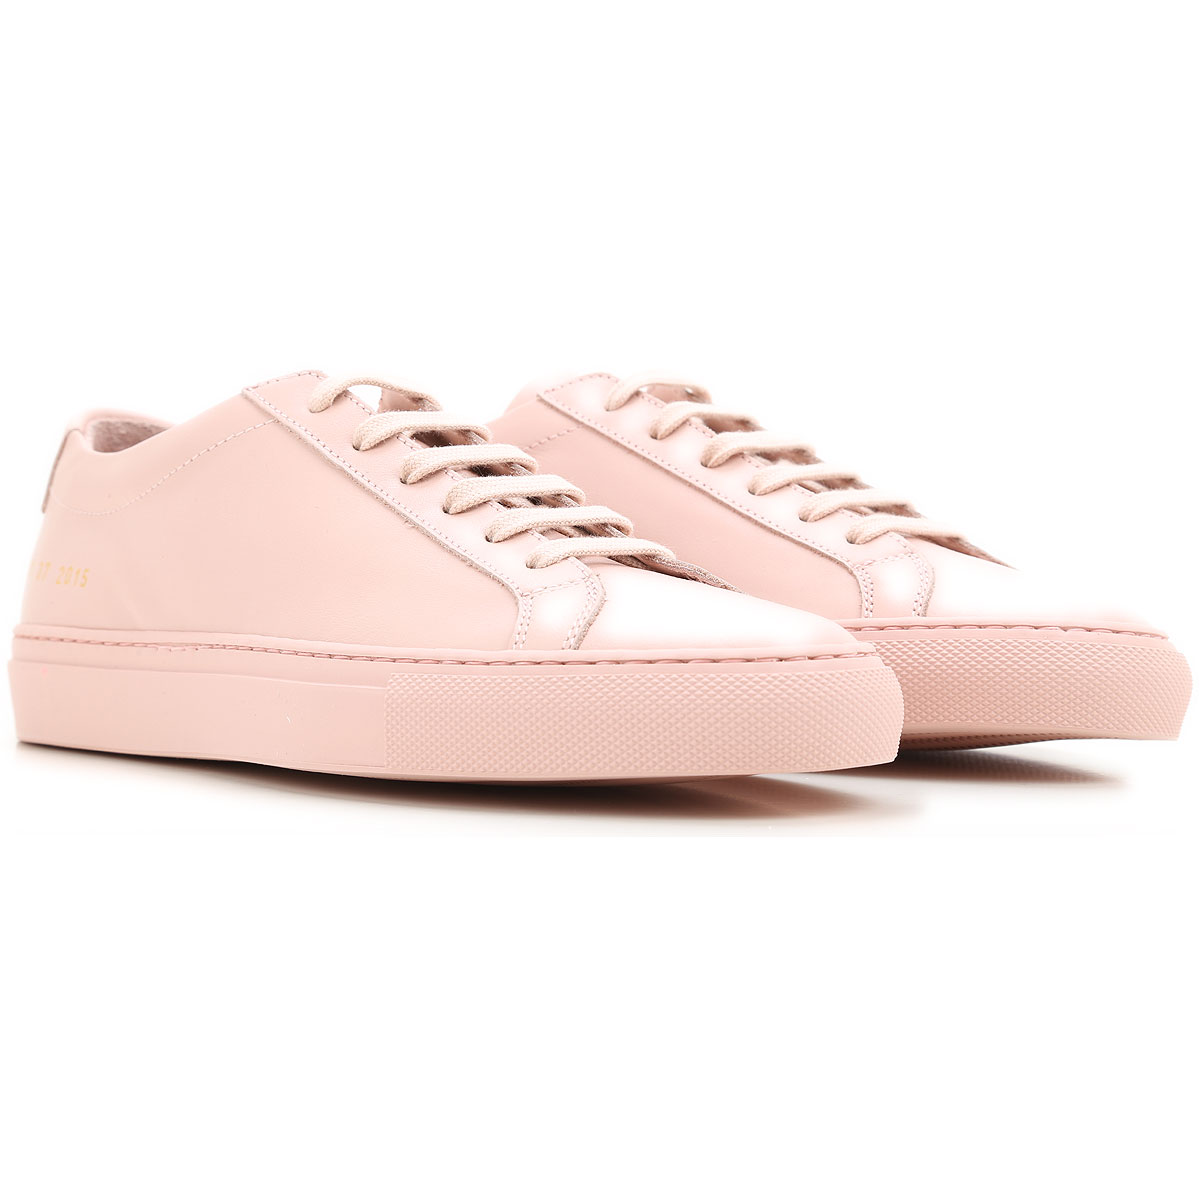 Image of Woman by Common Projects Sneakers for Women, blush, Leather, 2017, 10 5 6 7 8 9